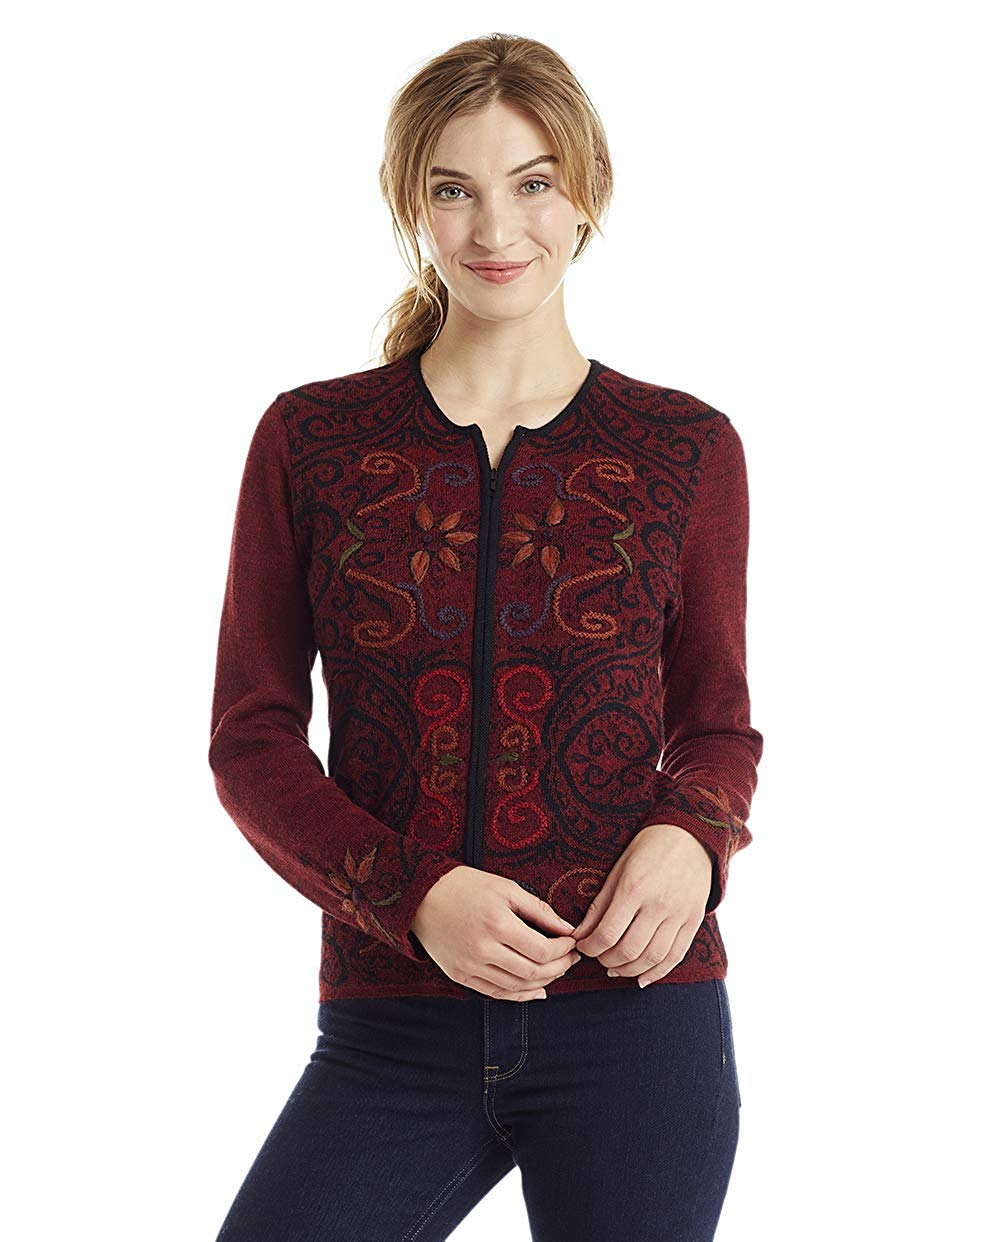 26753b73a2c Get Quotations · Invisible World Women s Baby Alpaca Wool Sweater  Reversible Cardigan Arabesque